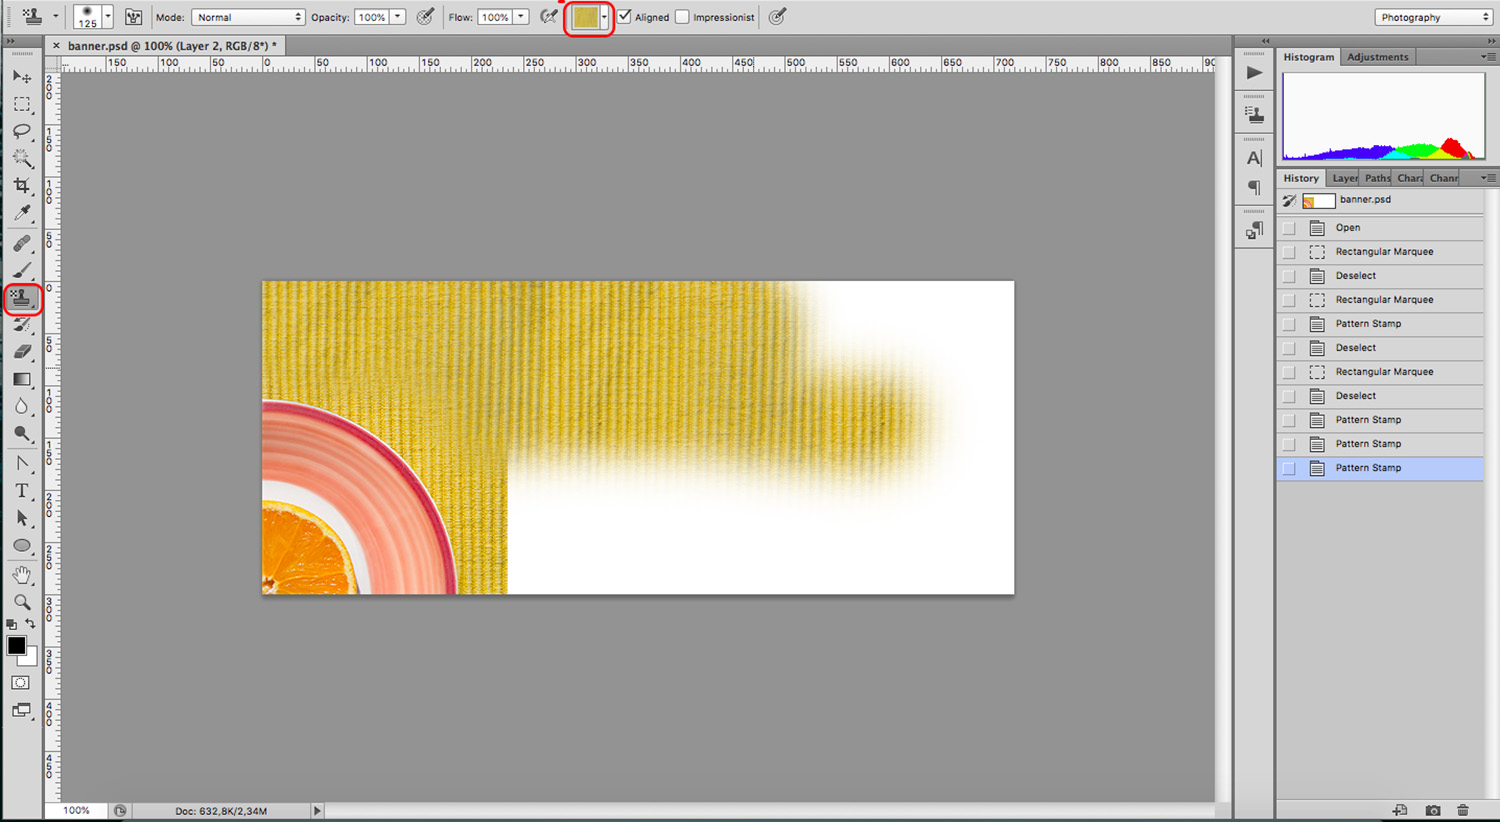 Pattern Stamp is another Photoshop tool to edit backgrounds